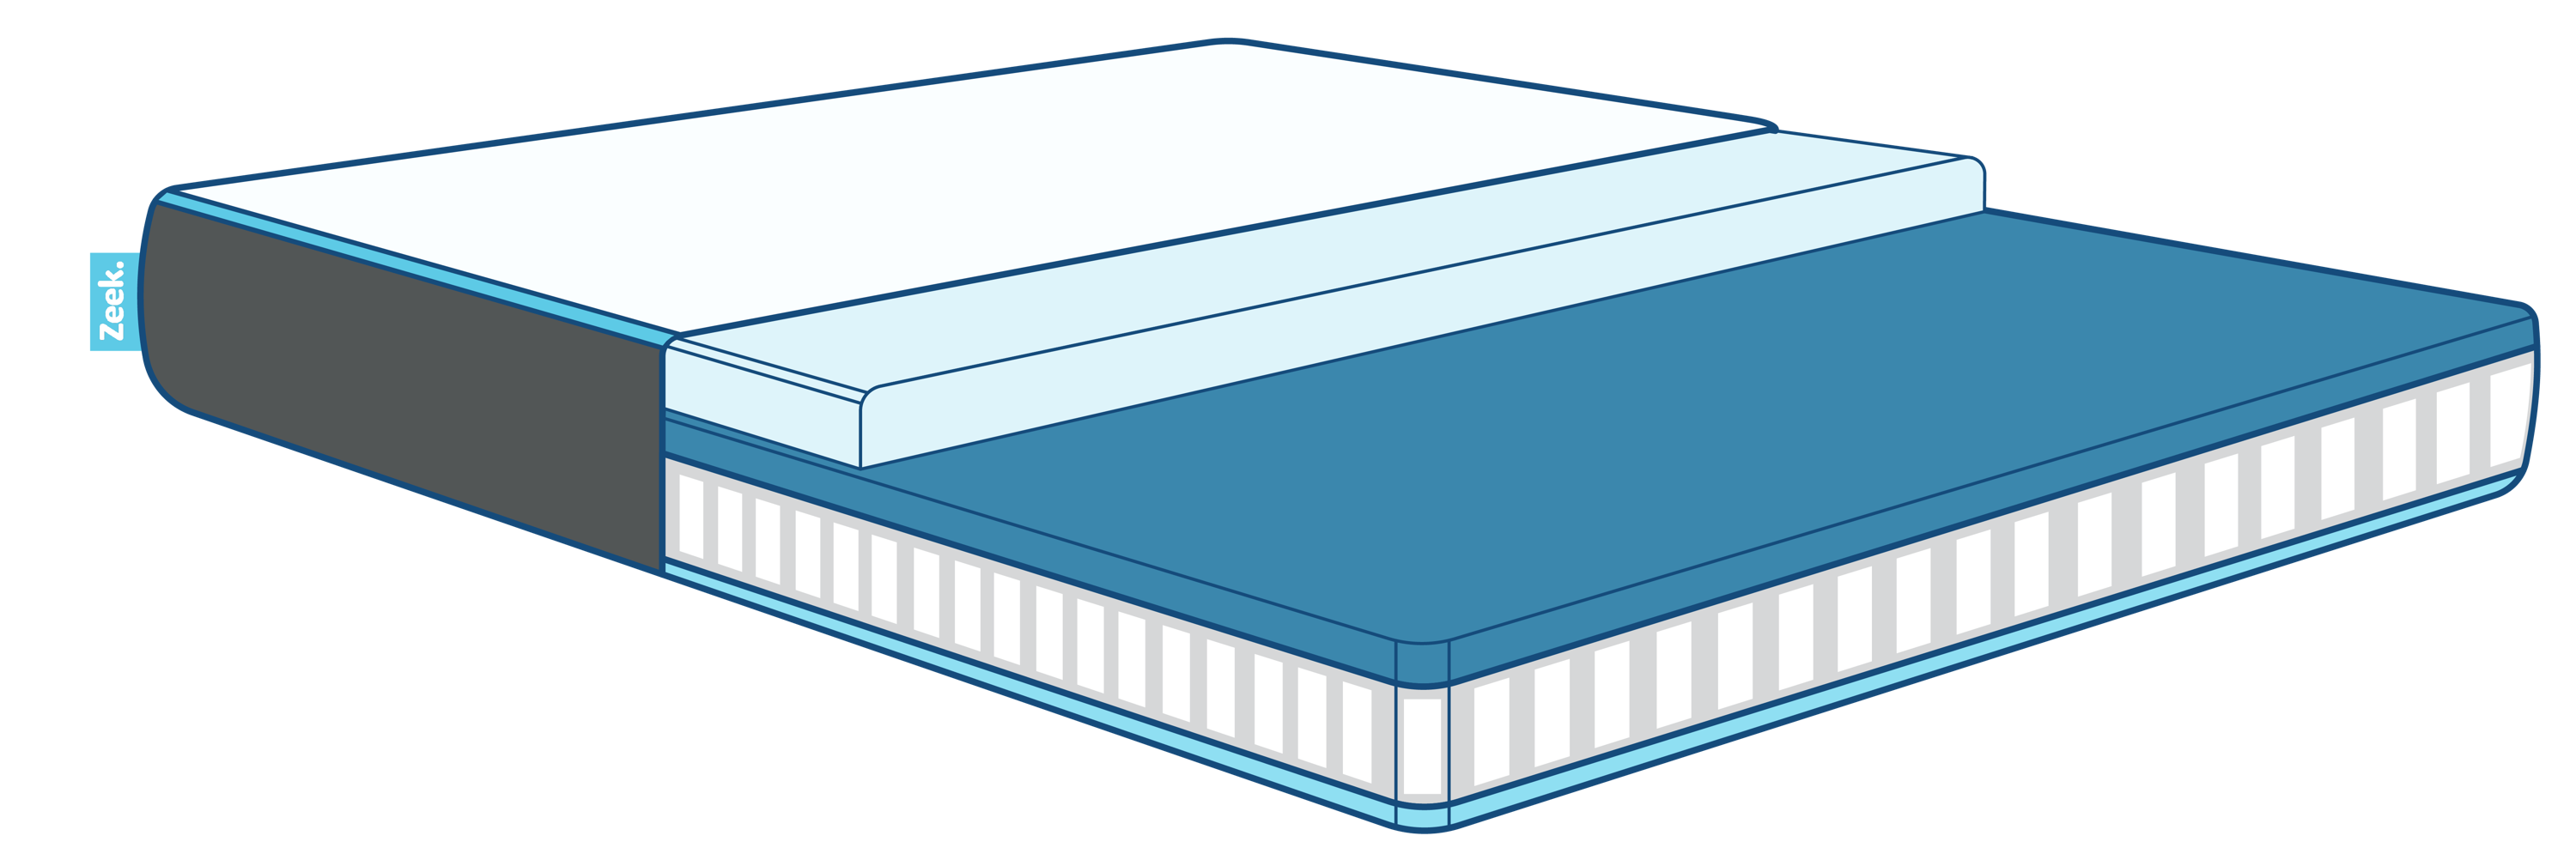 Hybrid Mattress in a box, best mattress in a box for side sleepers